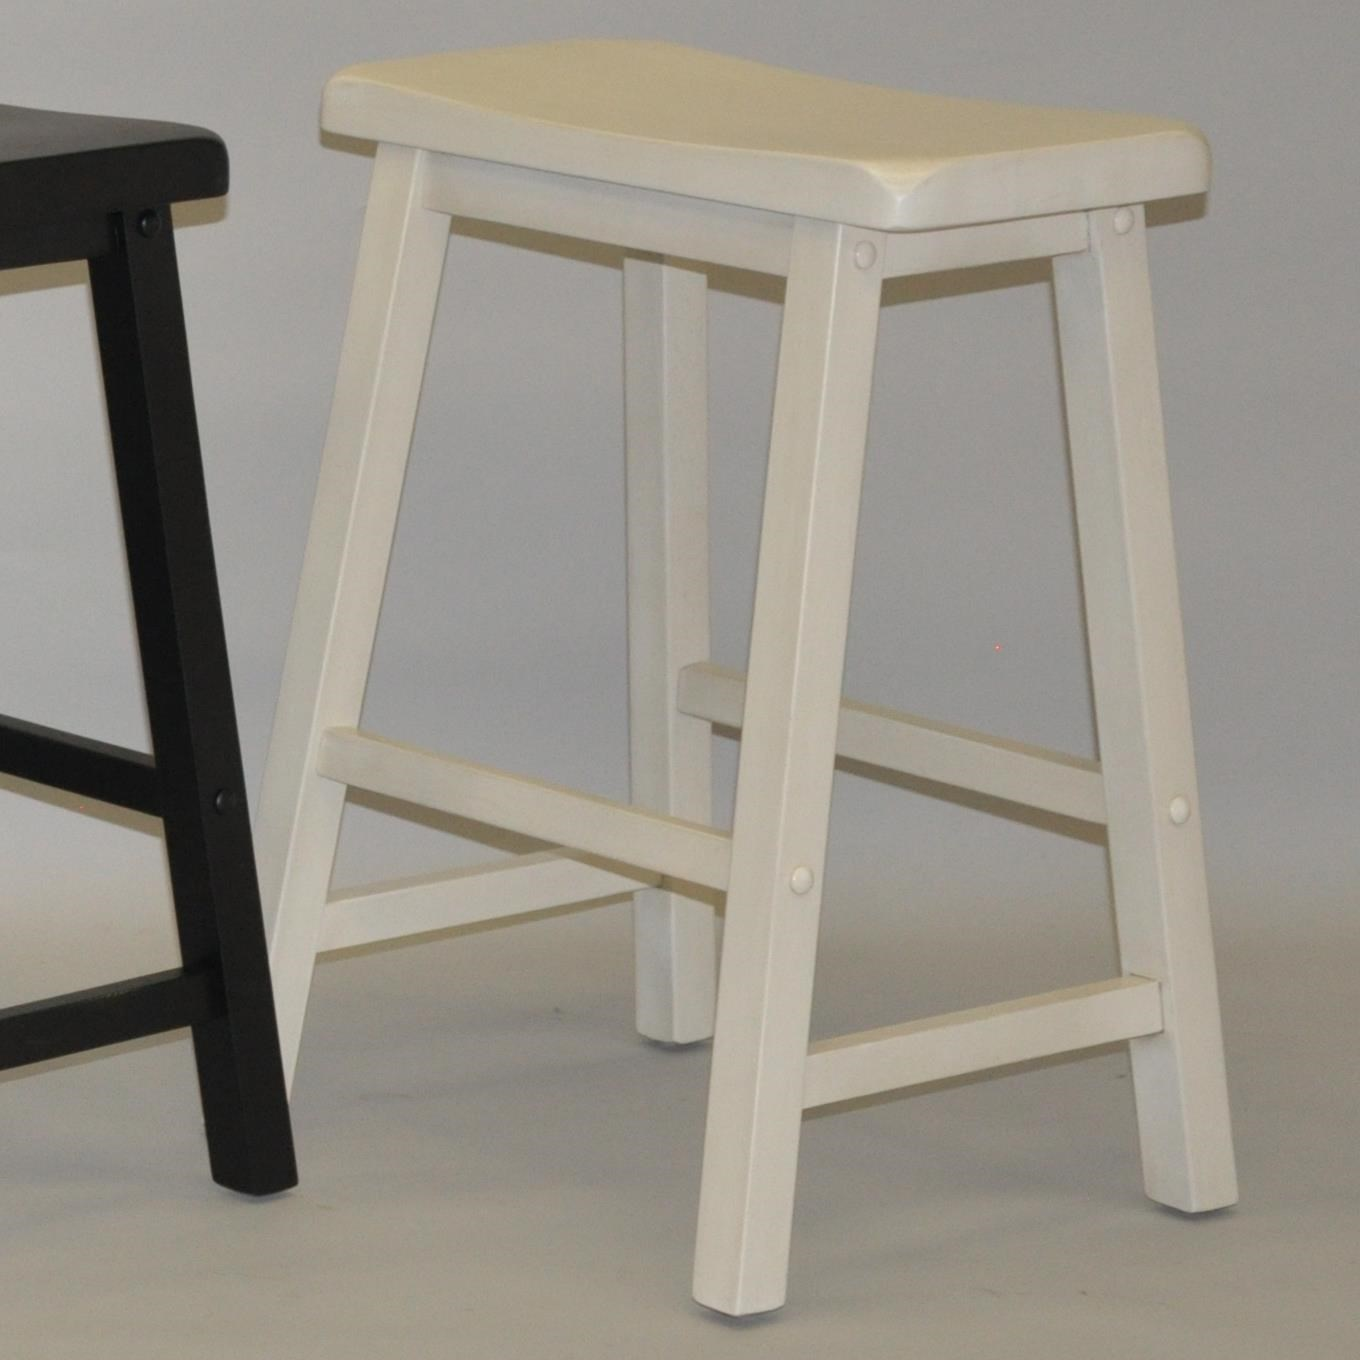 antique white bar stools. Kitchen Island With 4 Antique White Barstools Bar Stools